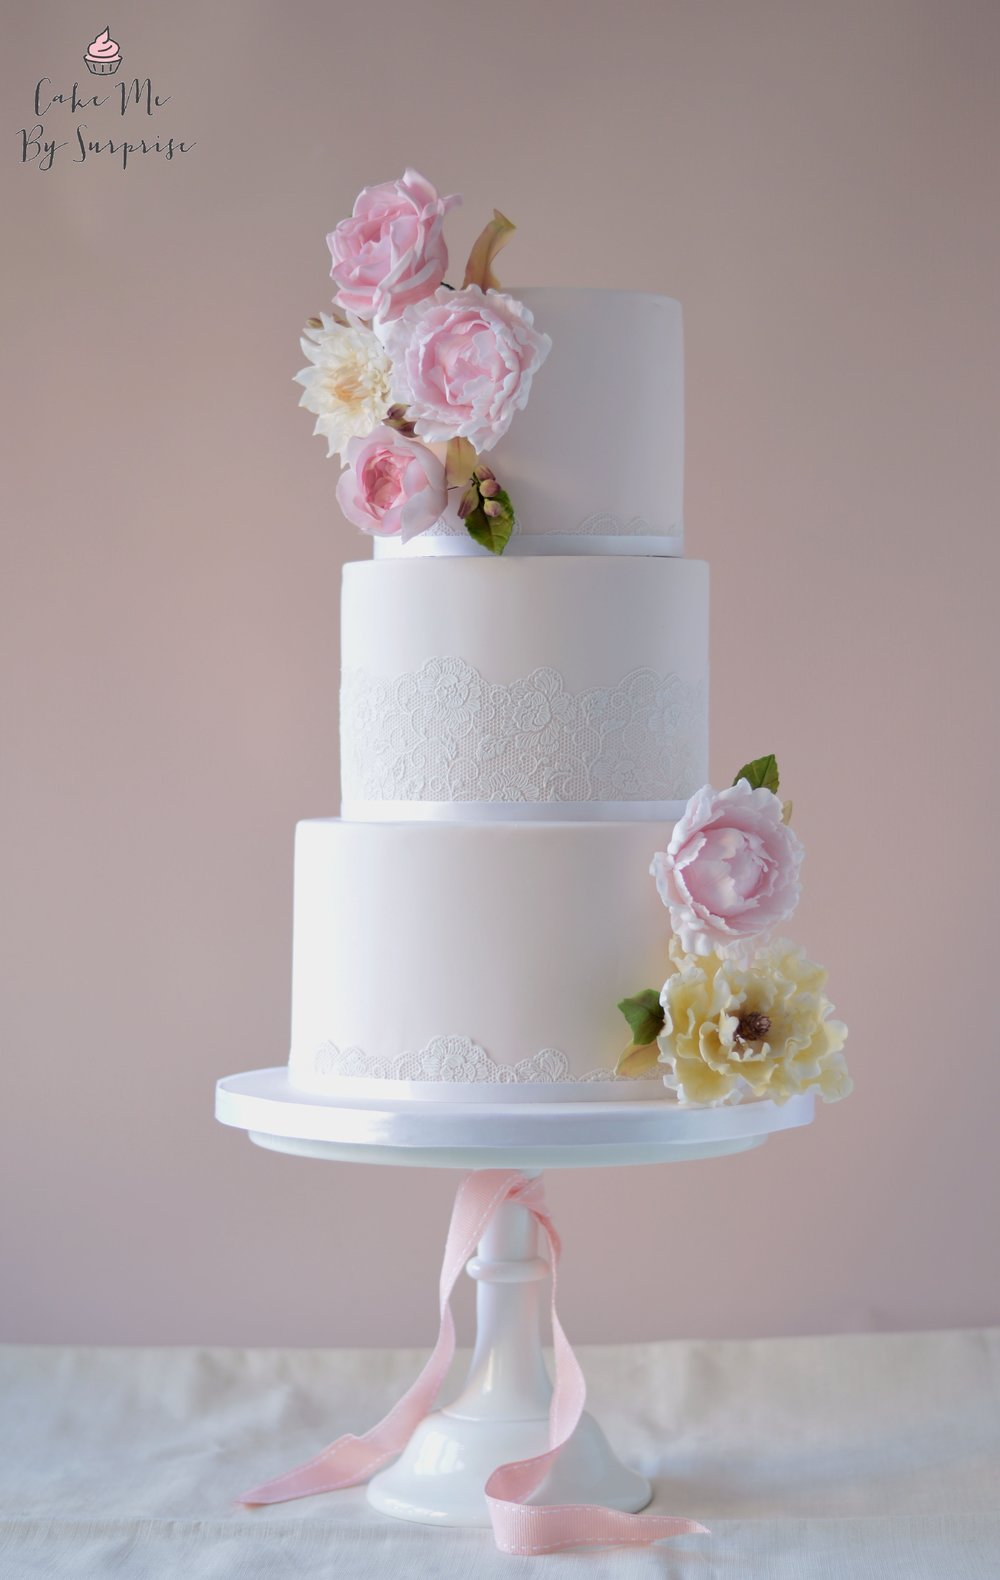 Sweet Love - Dusty Pink Floral Wedding Cake A three tier blush pink finished cake, with edible lace trim and handcrafted sugar flower blooms. Serves 130 £450